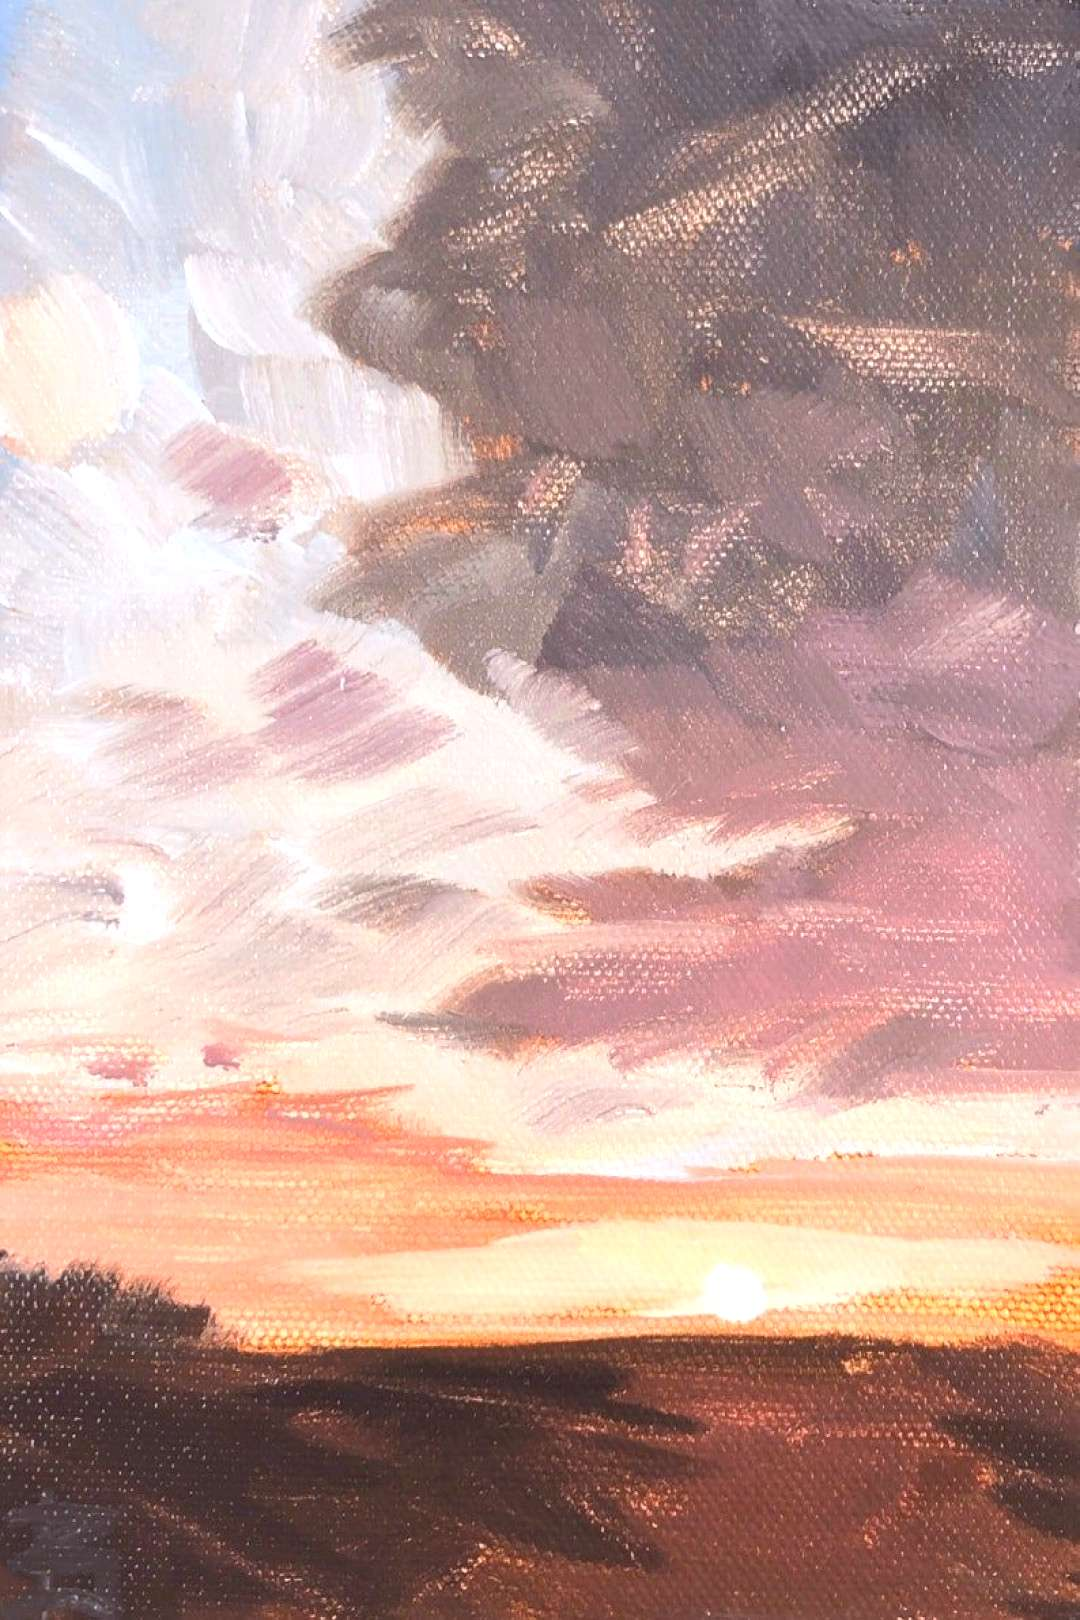 5x7 inch Pittsburgh Pennsylvania sunset sky landacape oil painting on canvas panel varnished expres